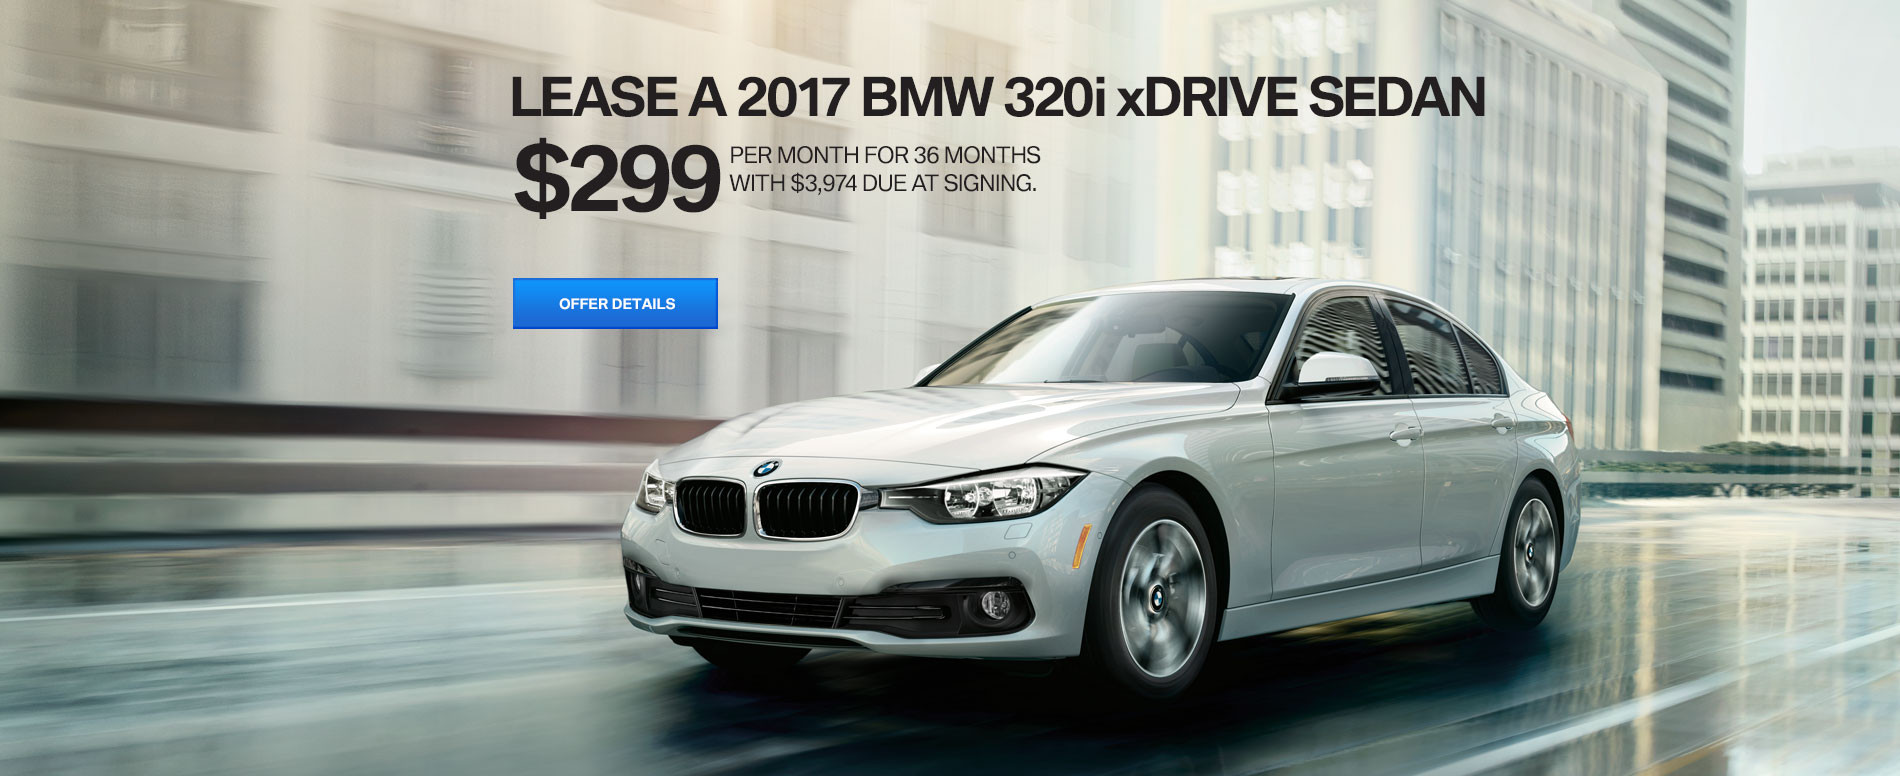 320i xDrive Sedan Lease for $299/mo for 36 months